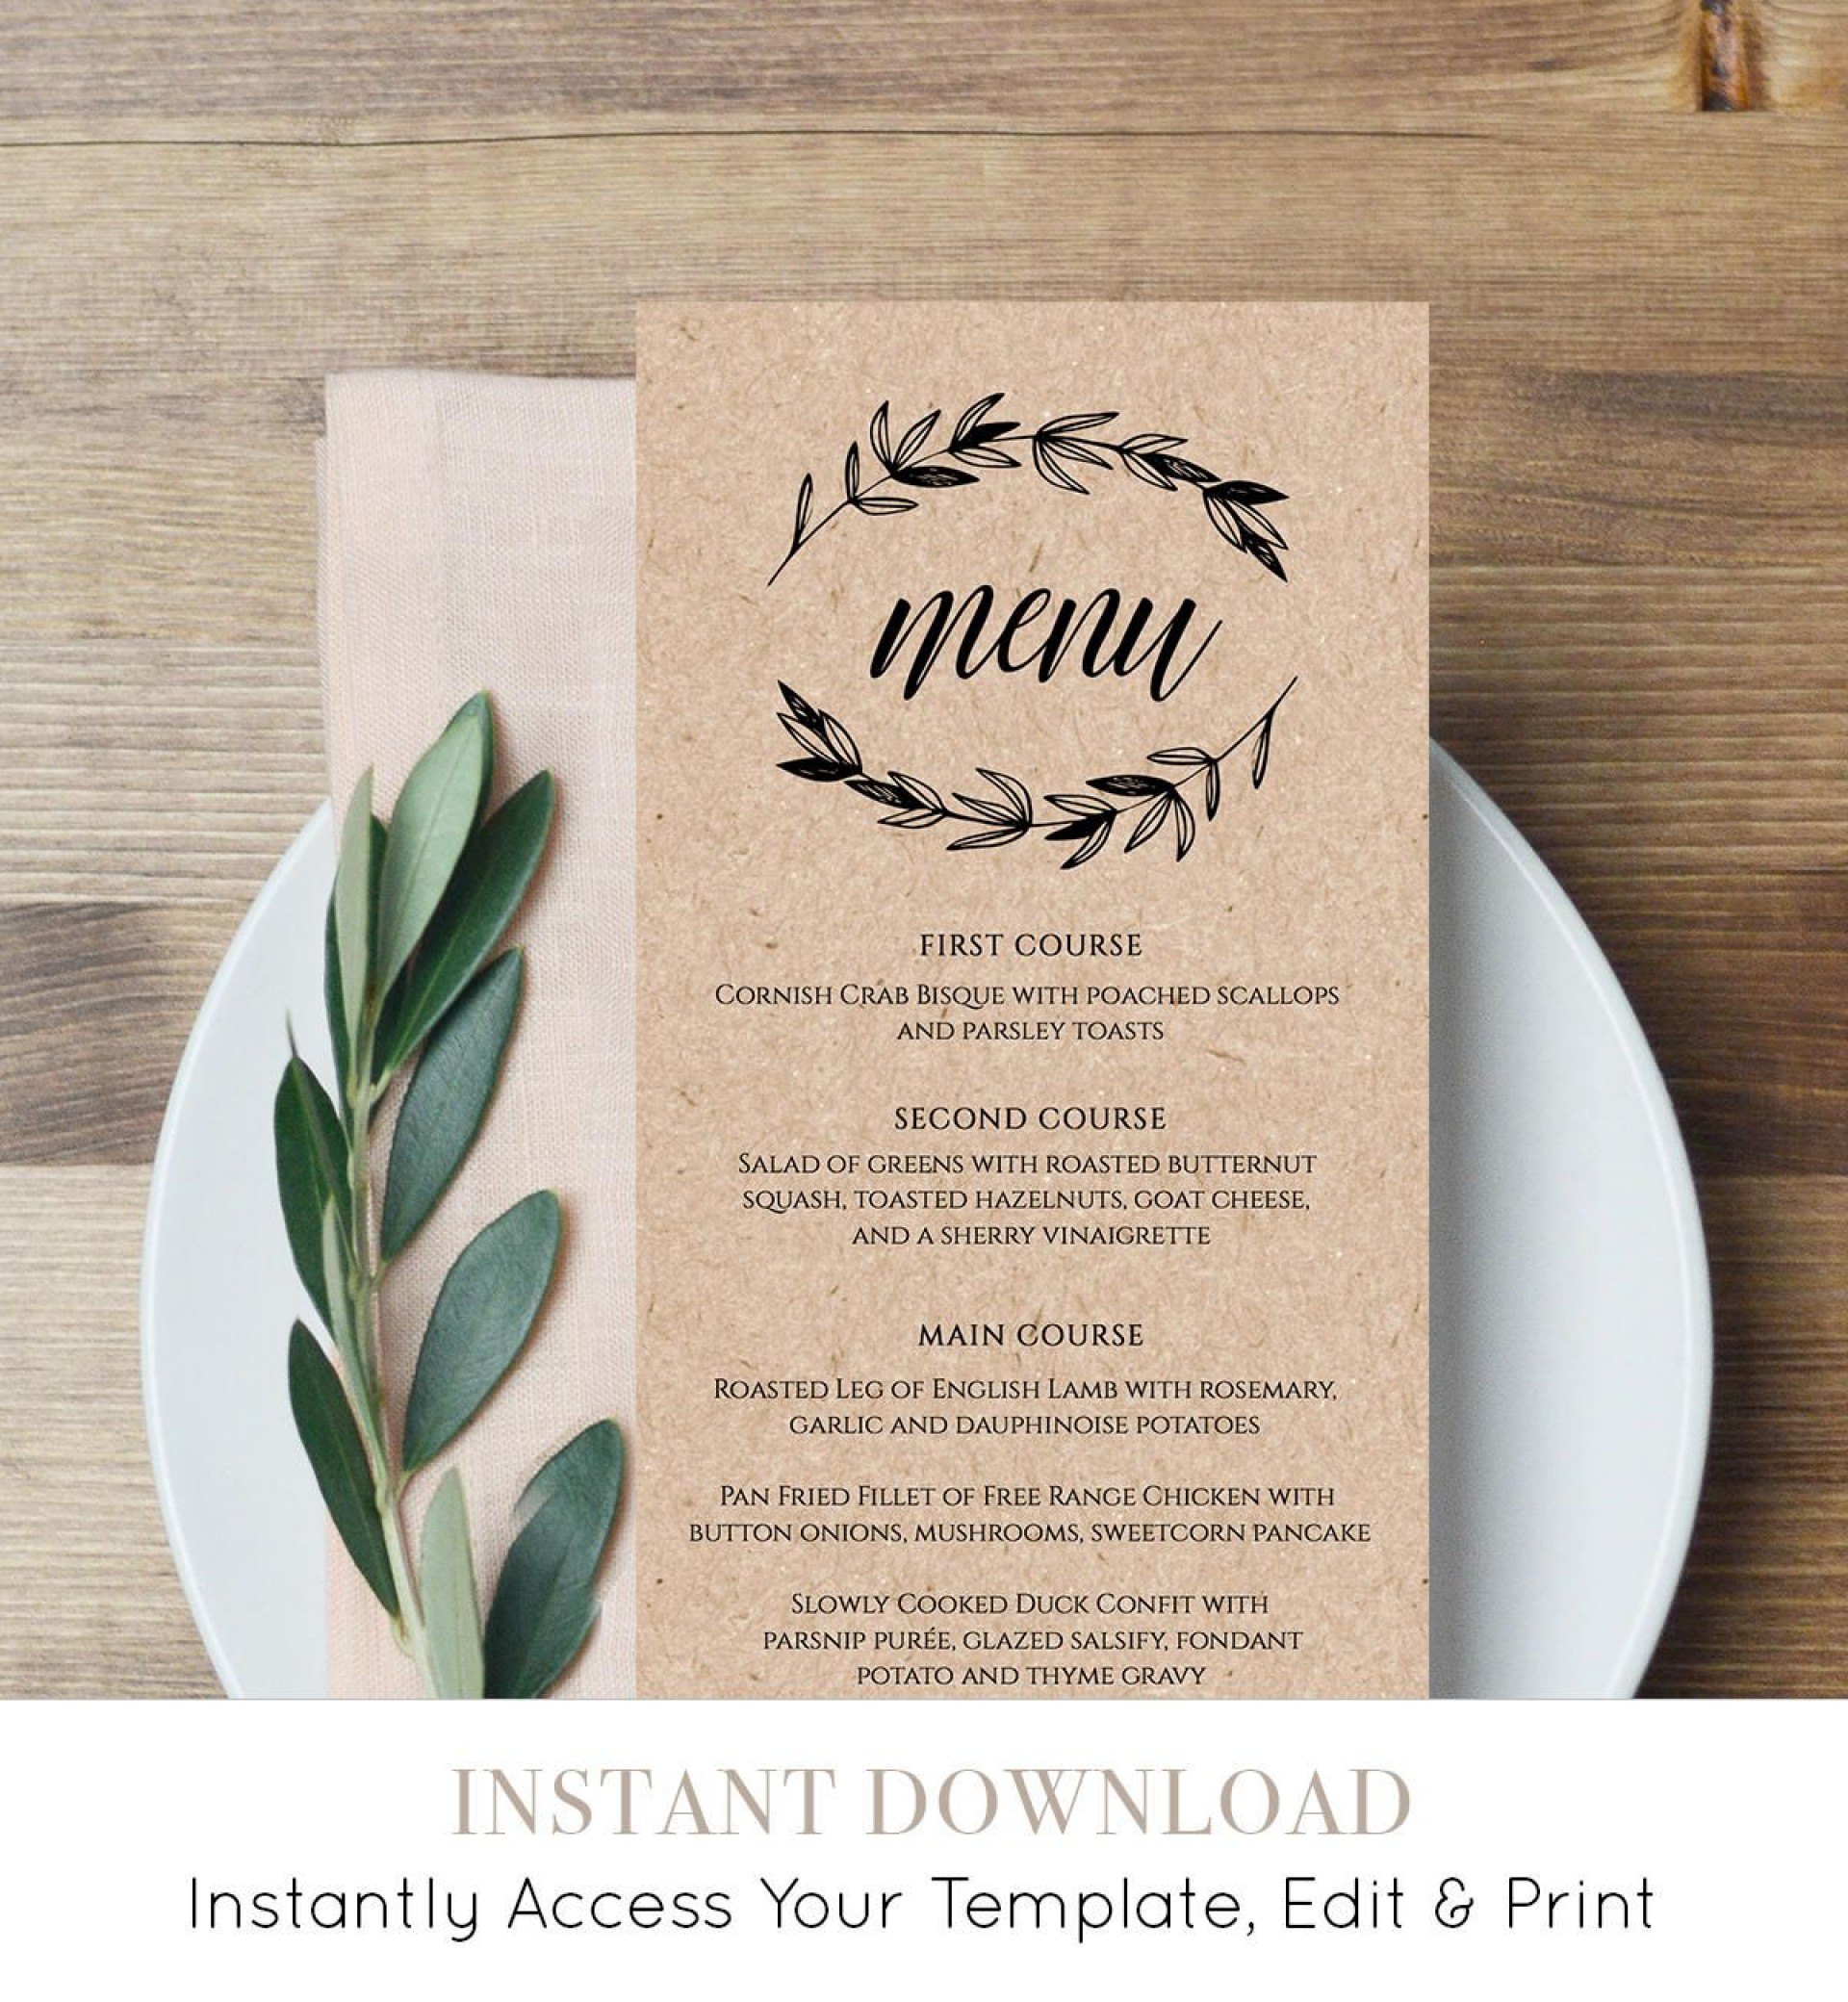 007 Unforgettable Free Wedding Menu Template To Print Inspiration  Printable Card1920